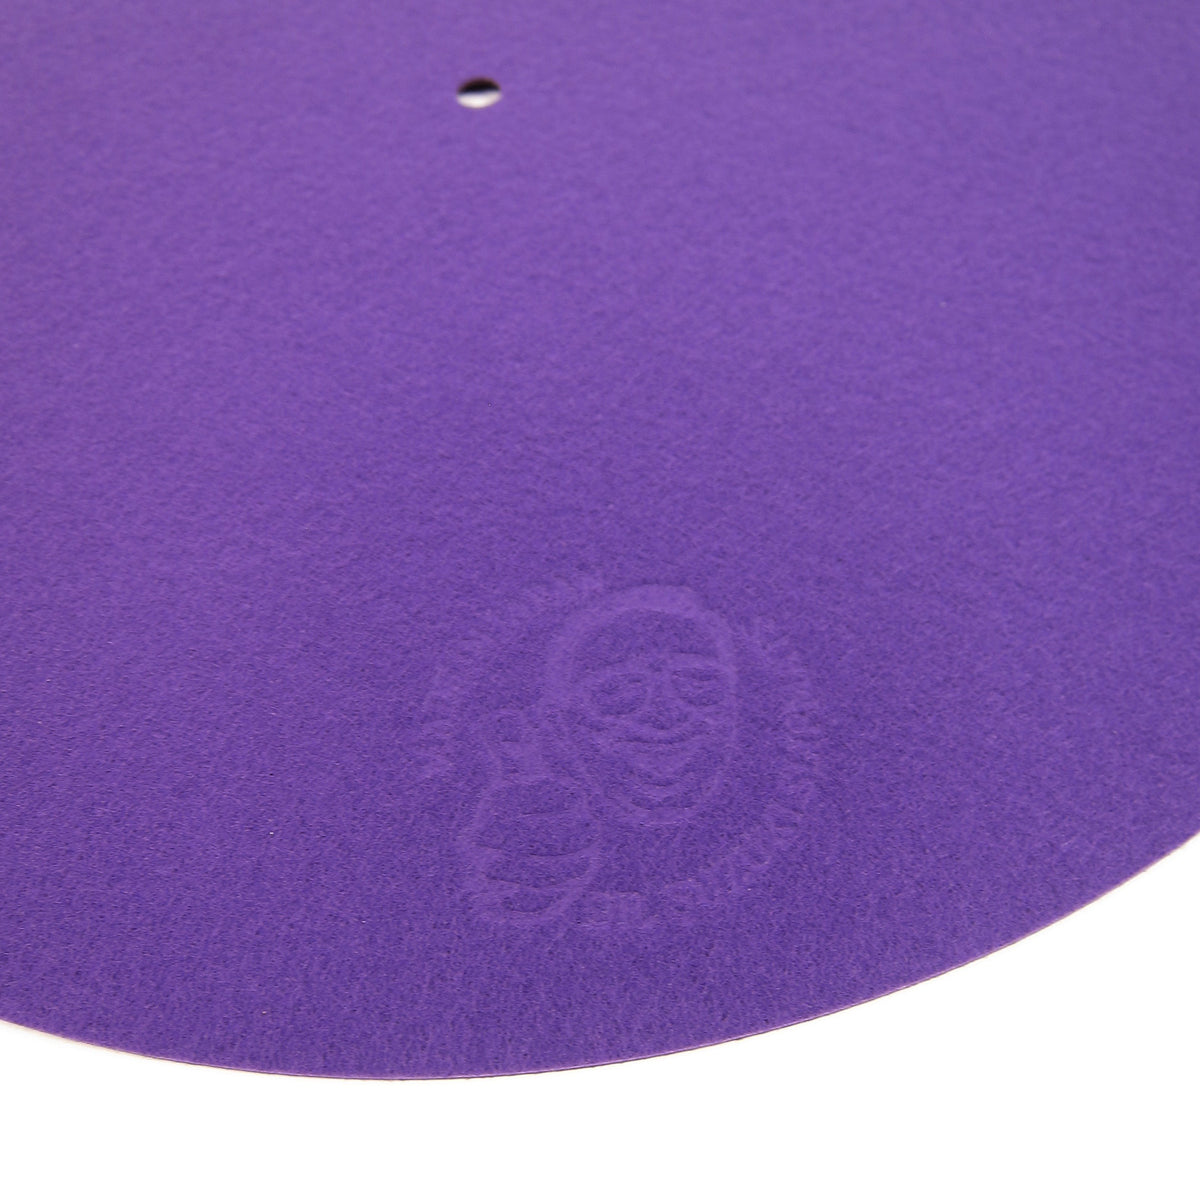 Stokyo: Dr. Suzuki Slipmats Mix Edition - Purple